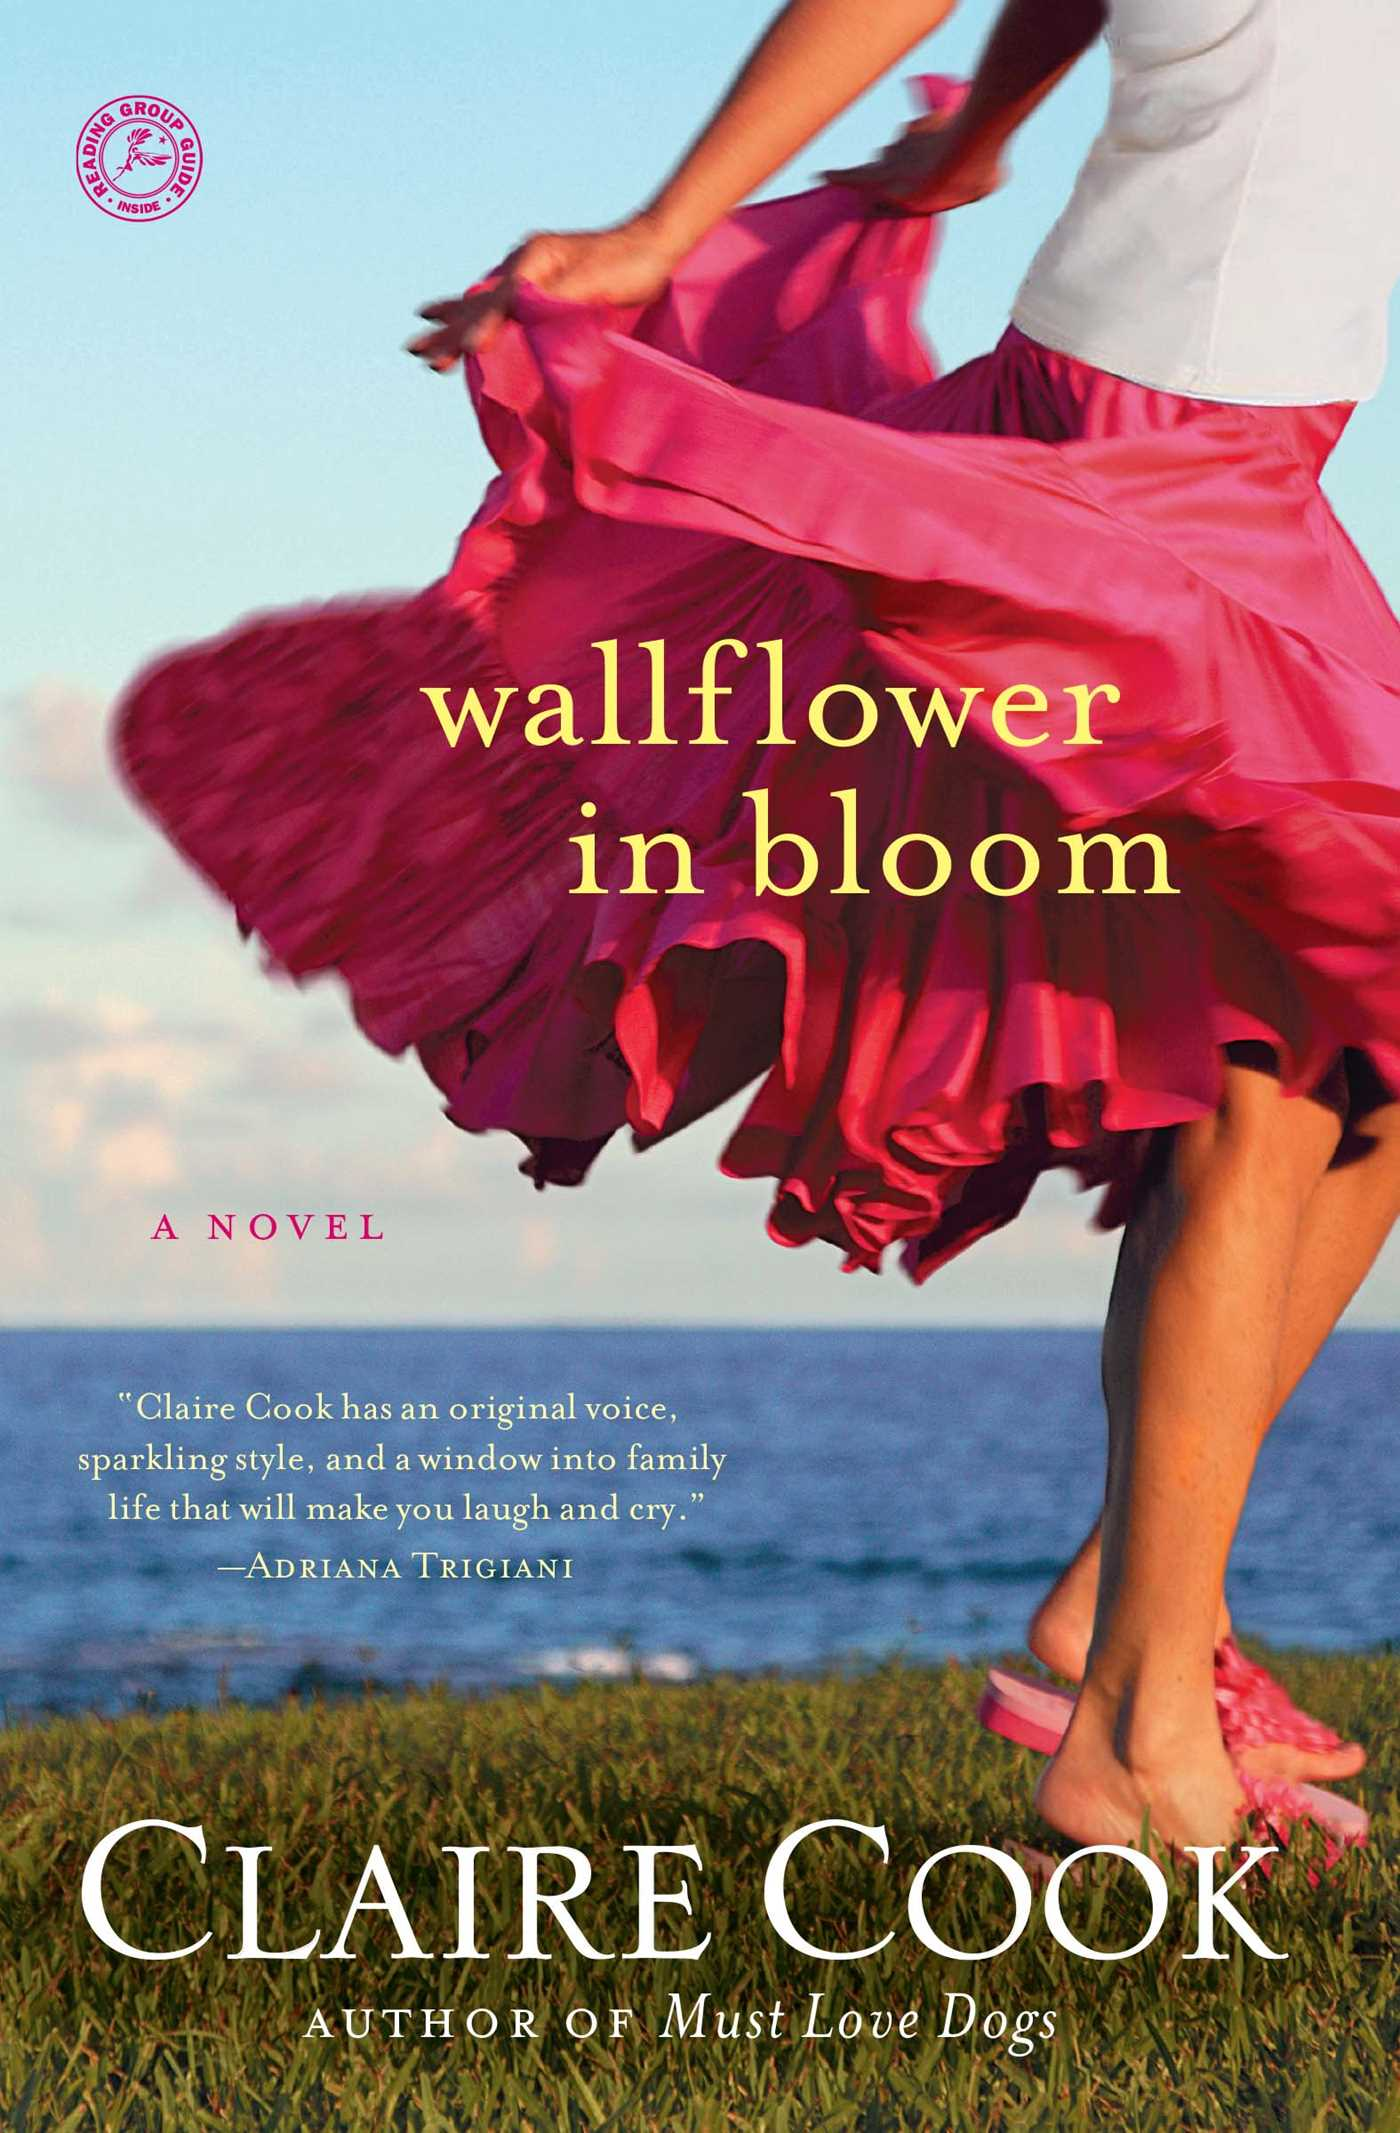 Wallflower-in-bloom-9781451672787_hr